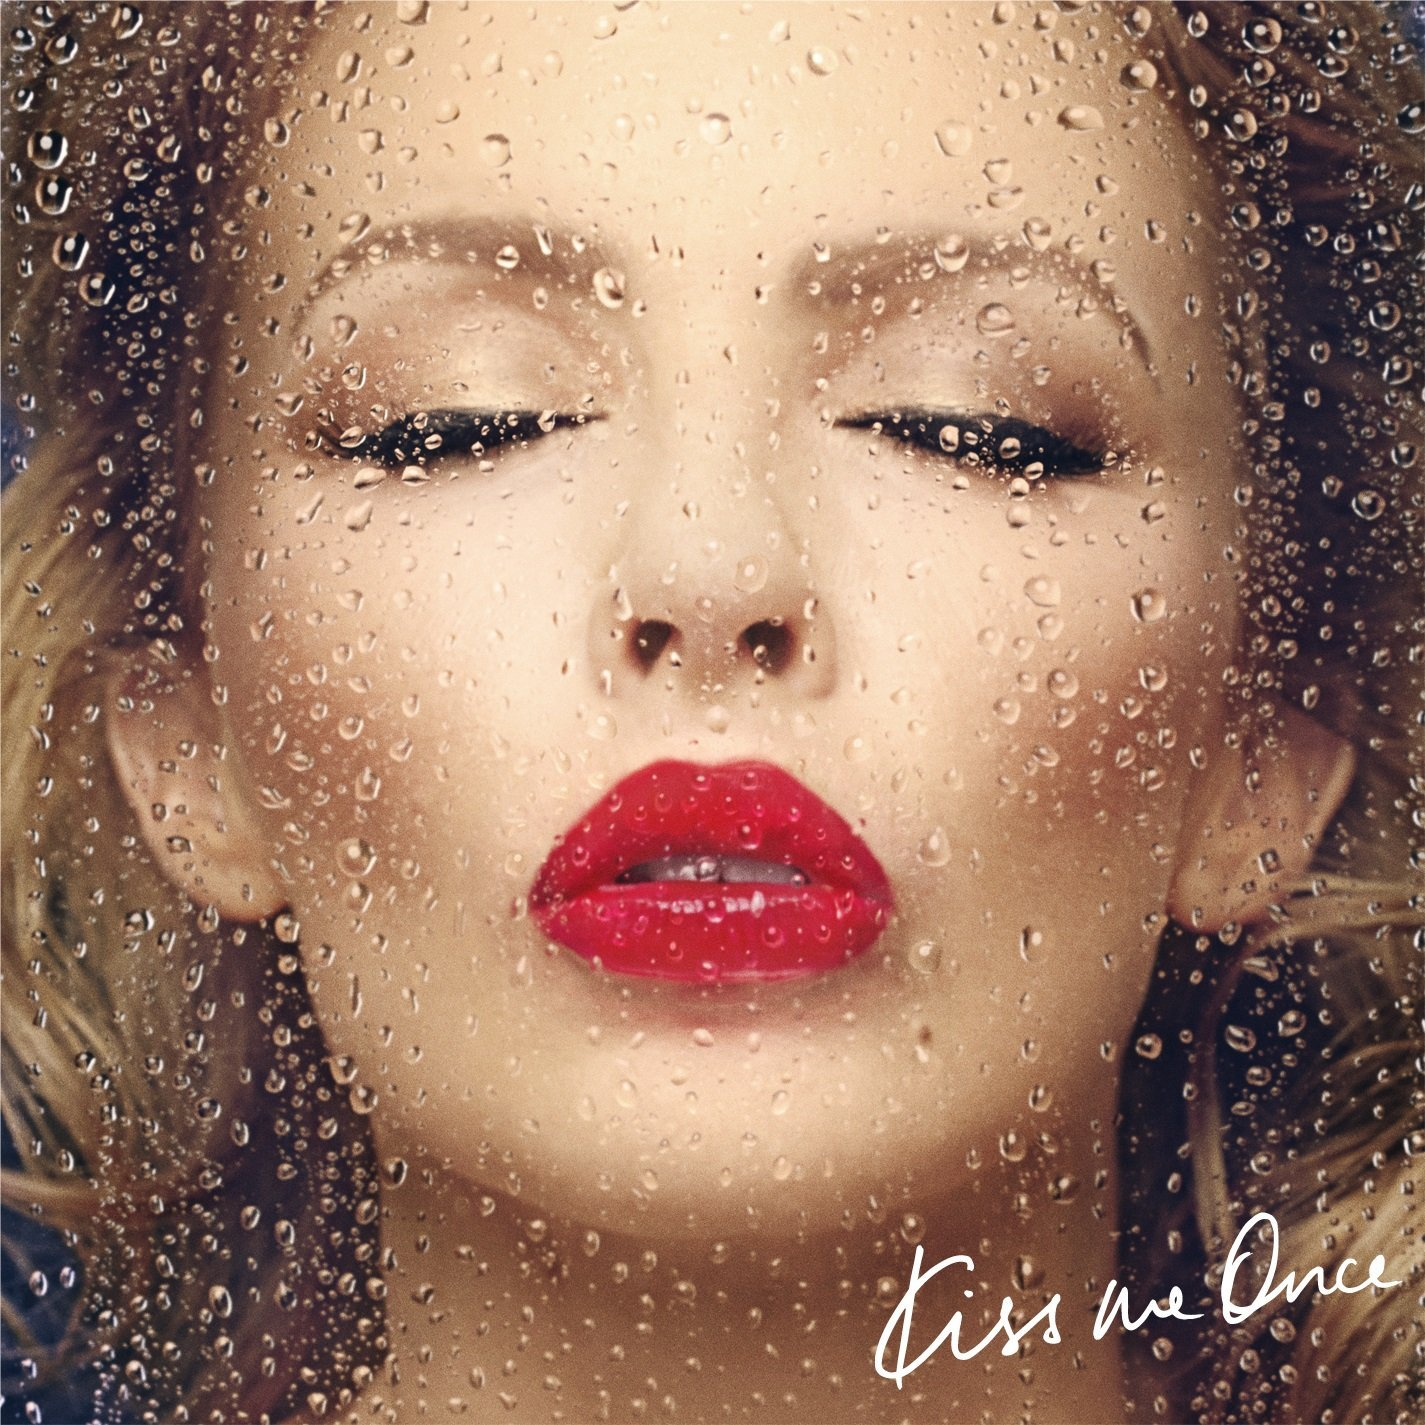 CD Review: Kiss Me Once by Kylie Minogue